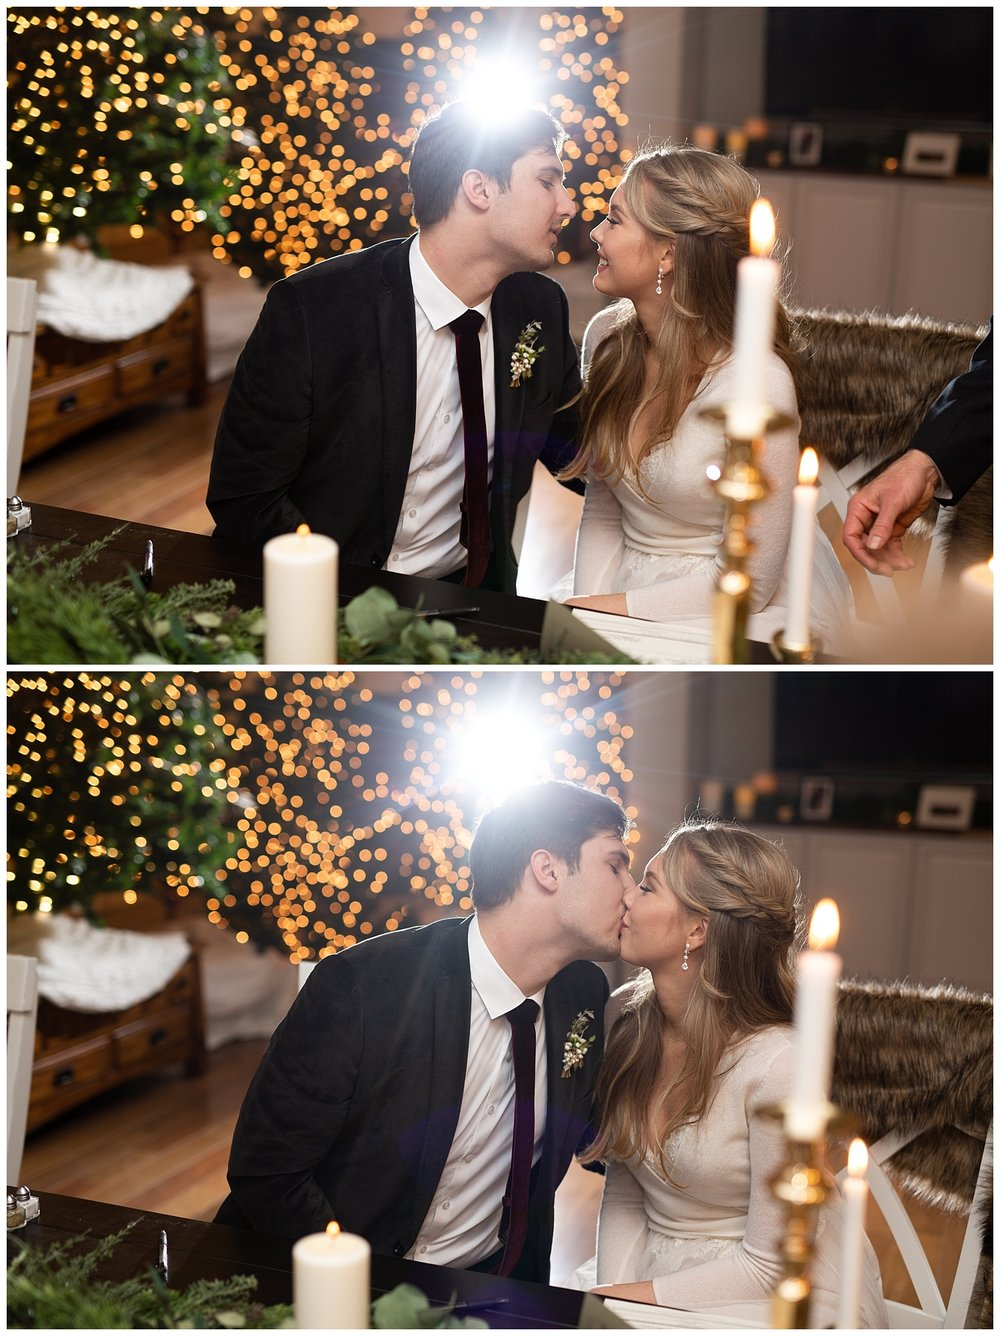 The groom kisses his bride right after signing their marriage license with a big light flare behind their heads